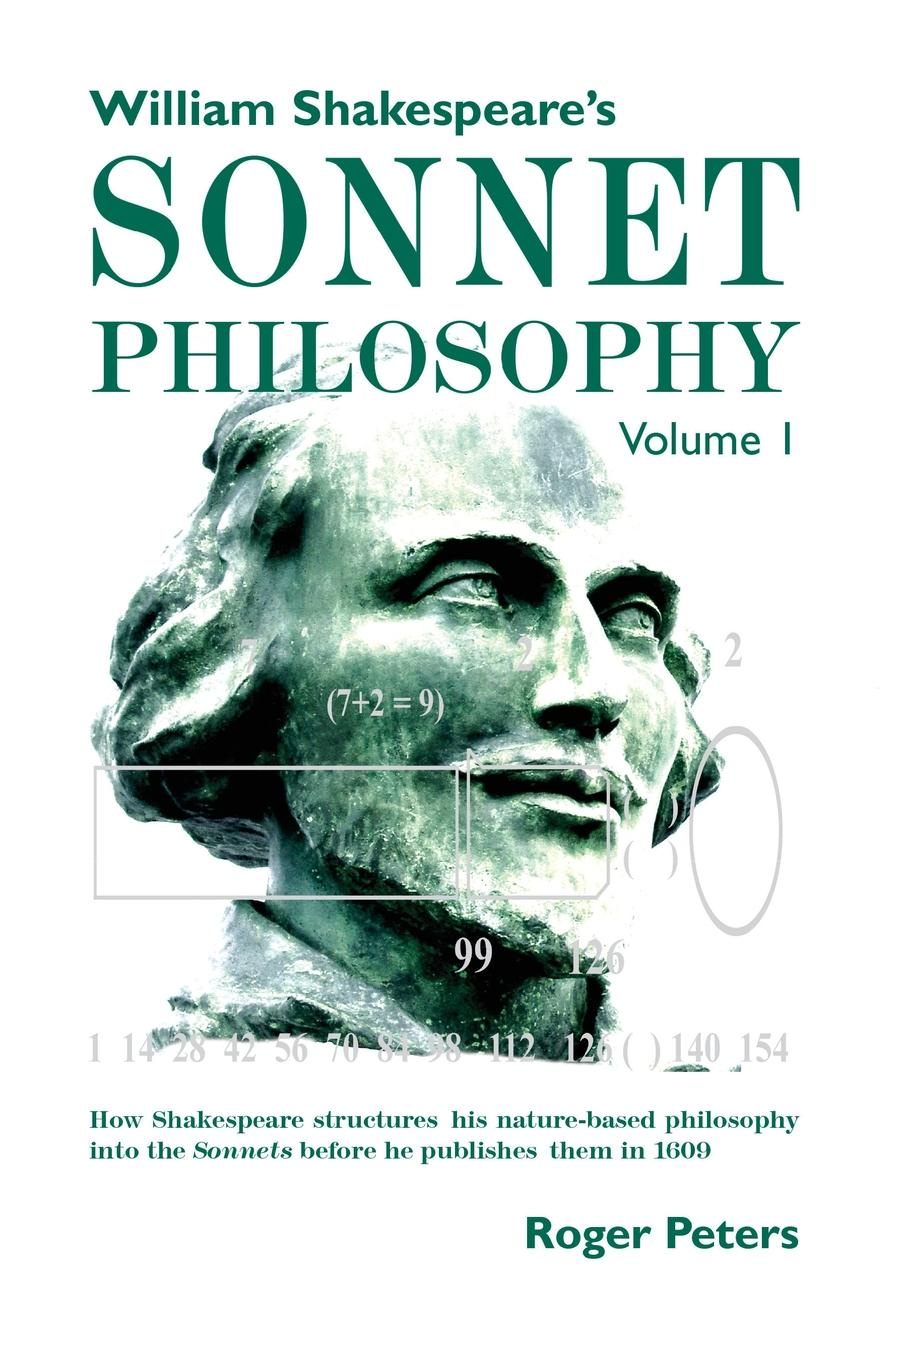 Roger Peters William Shakespeare.s Sonnet Philosophy, Volume 1. How Shakespeare structured his nature-based philosophy into the Sonnets before he published them in 1609 shakespeare w sonnets